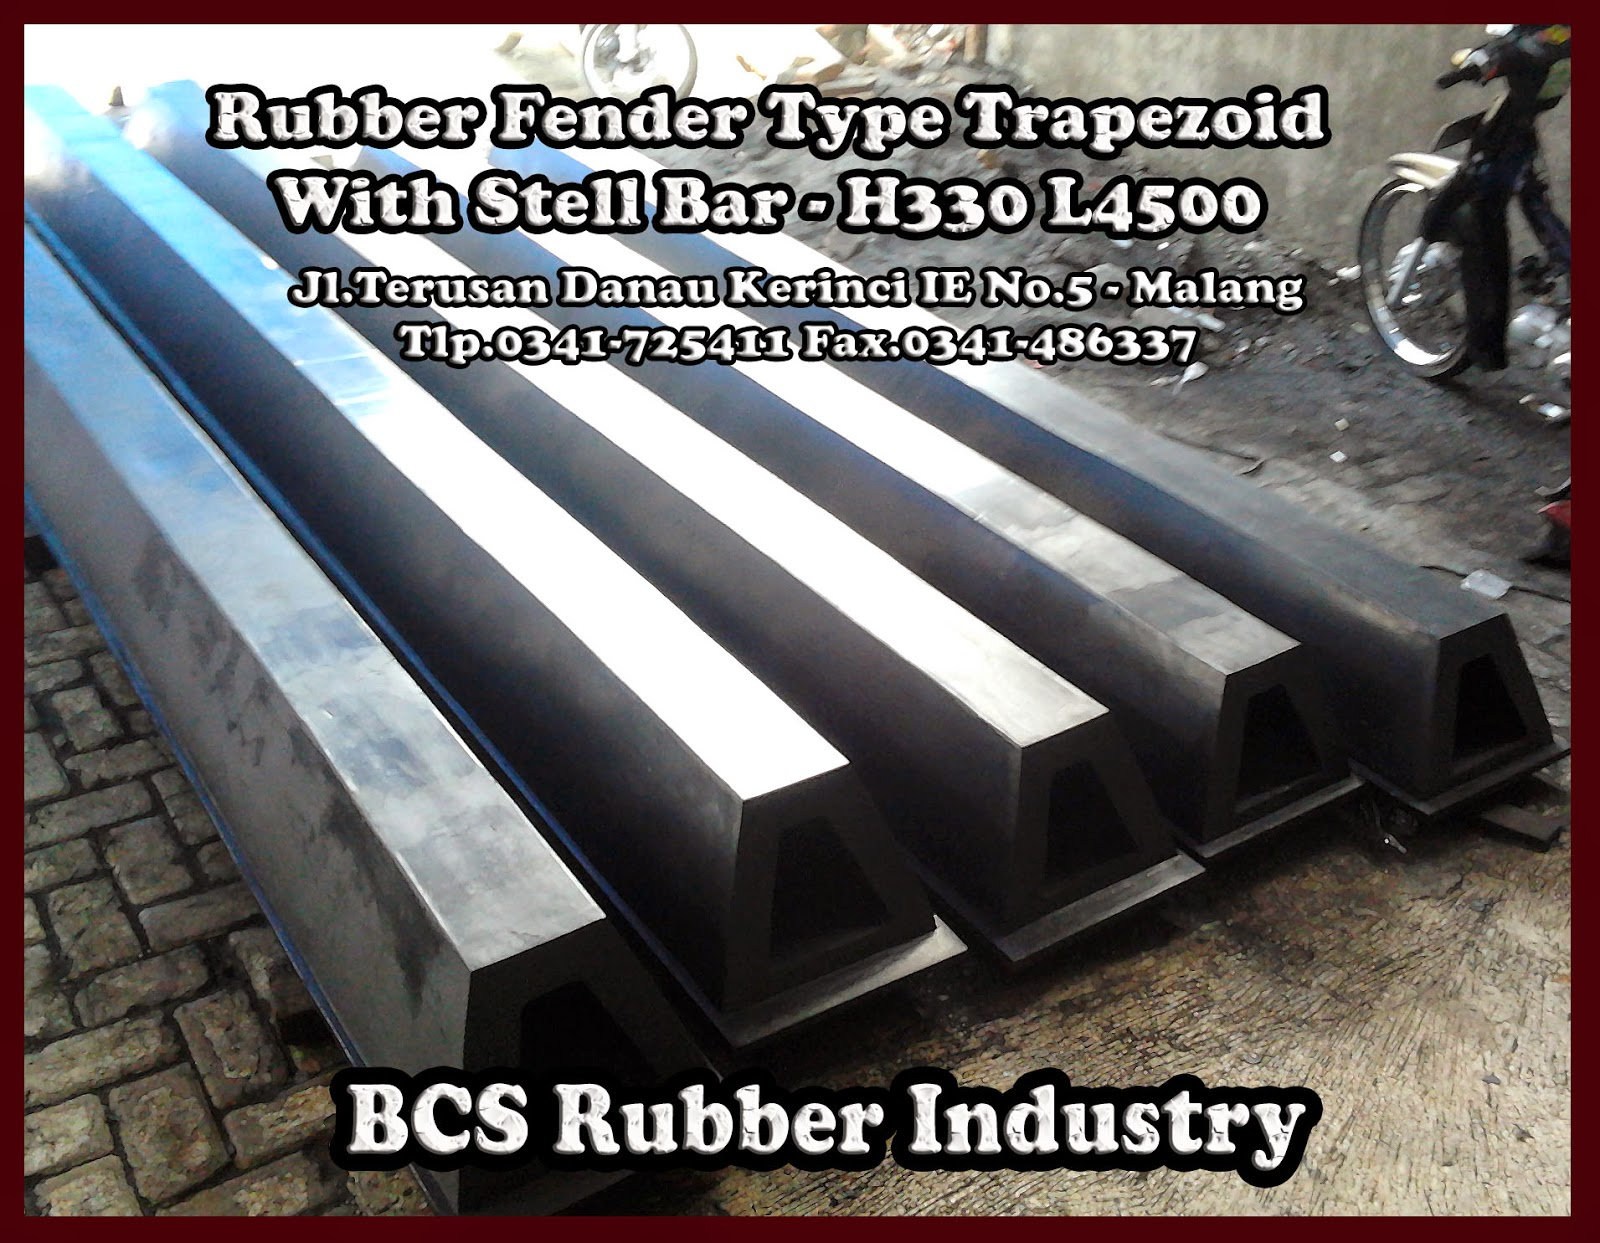 Rubber Fender Type Trapezoid ,Rubber Fender